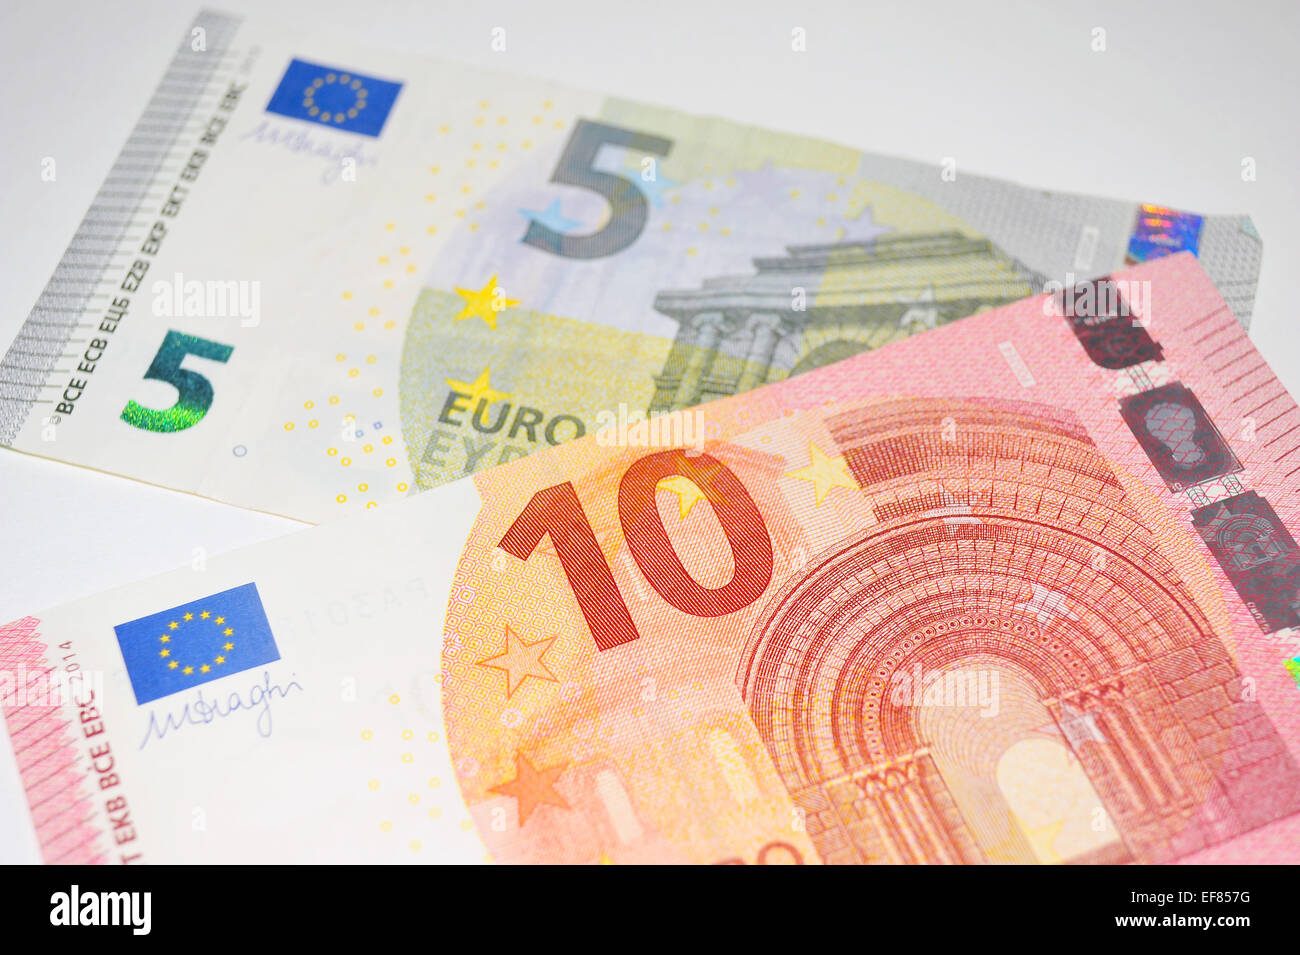 european 5 euro and 10 euro currency notes photographed against a stock photo royalty free. Black Bedroom Furniture Sets. Home Design Ideas